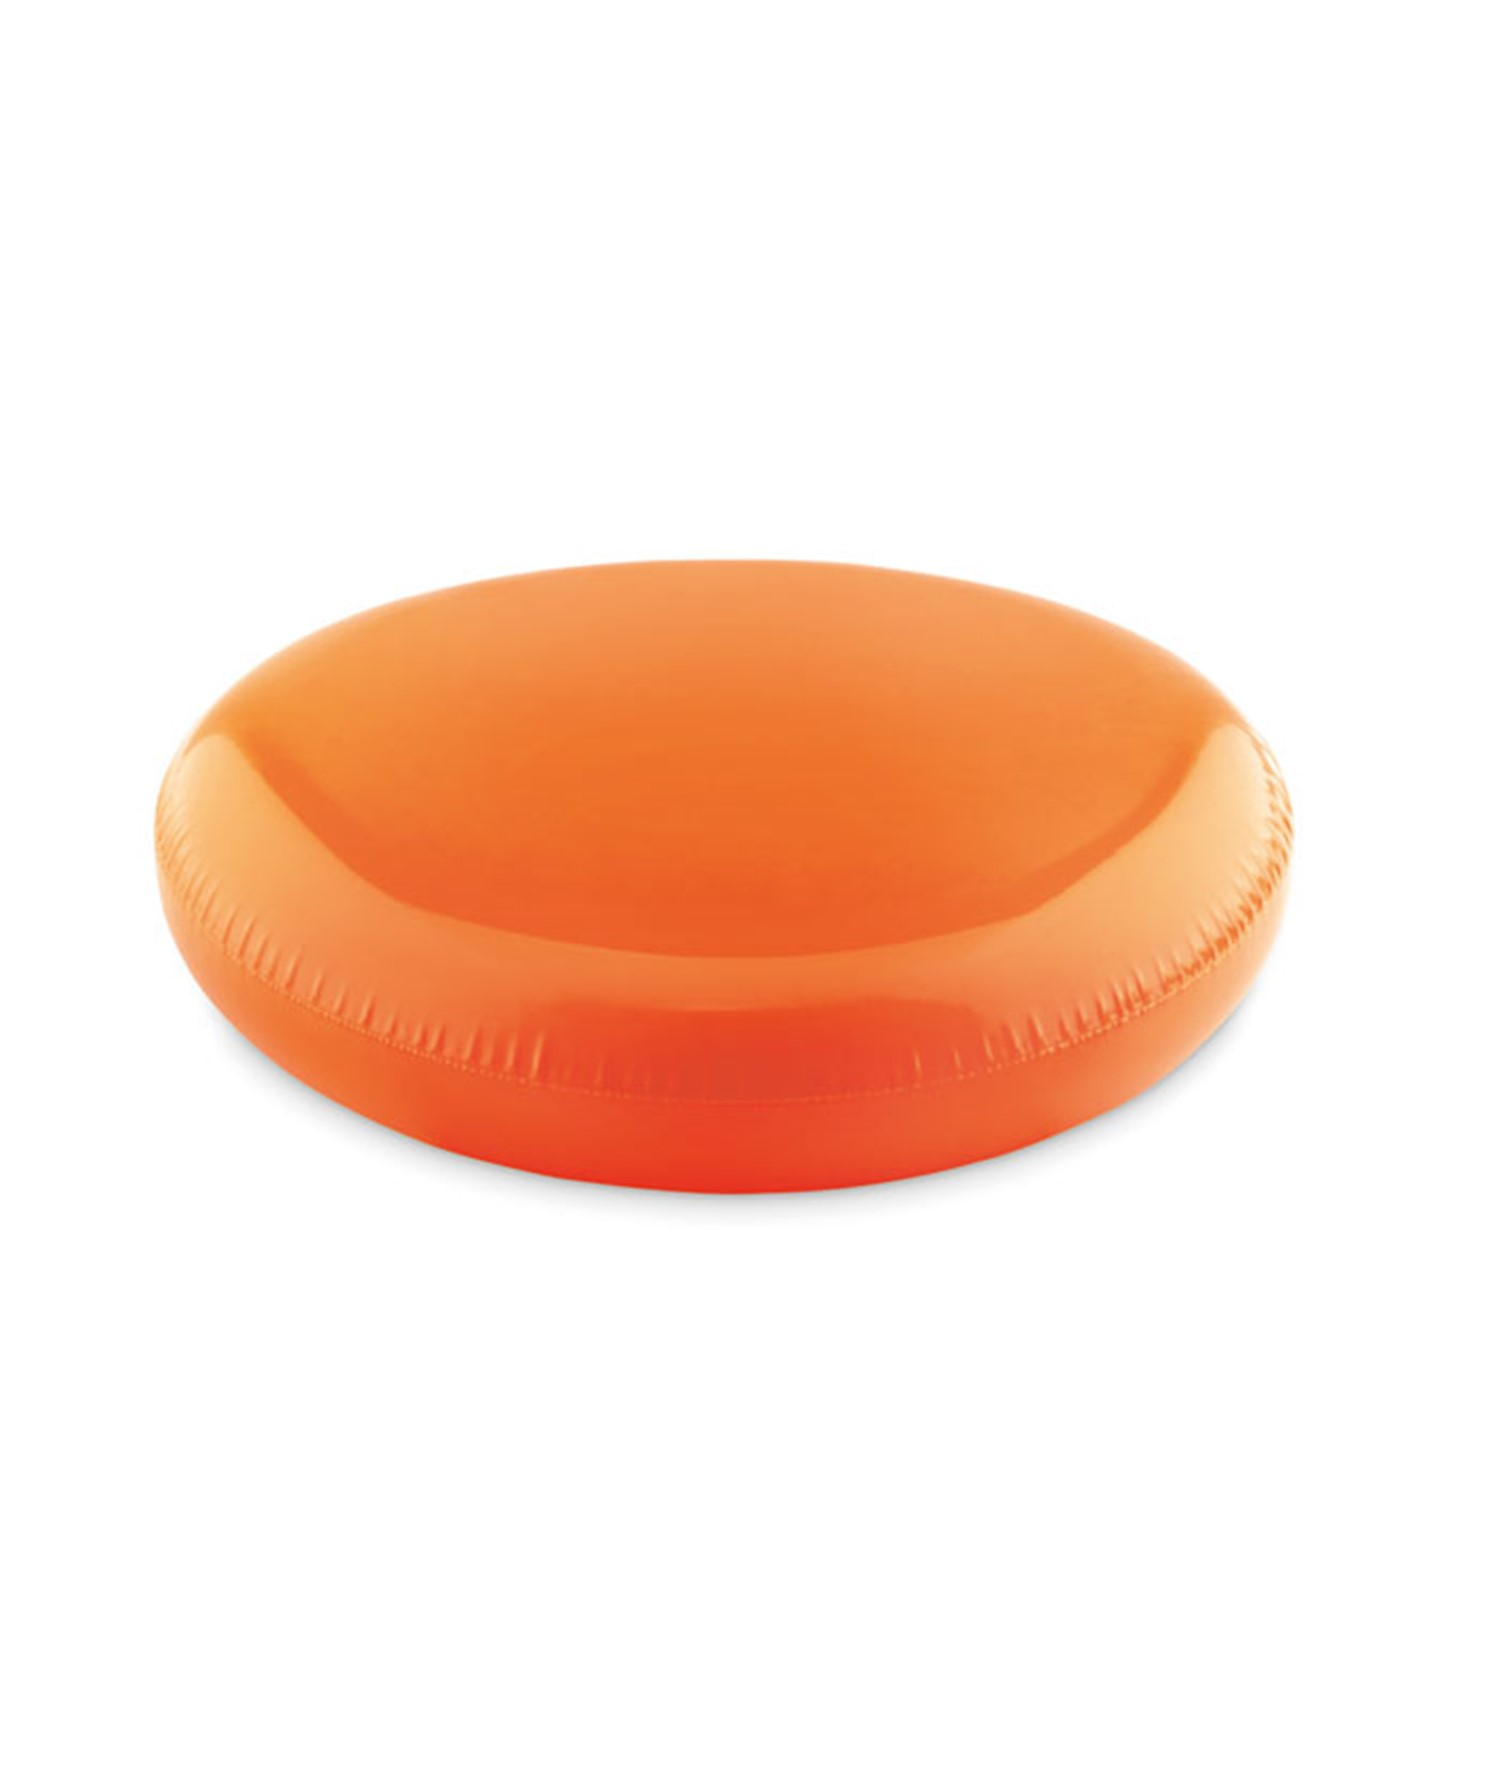 ADELAIDE - INFLATABLE FRISBEE 24CM